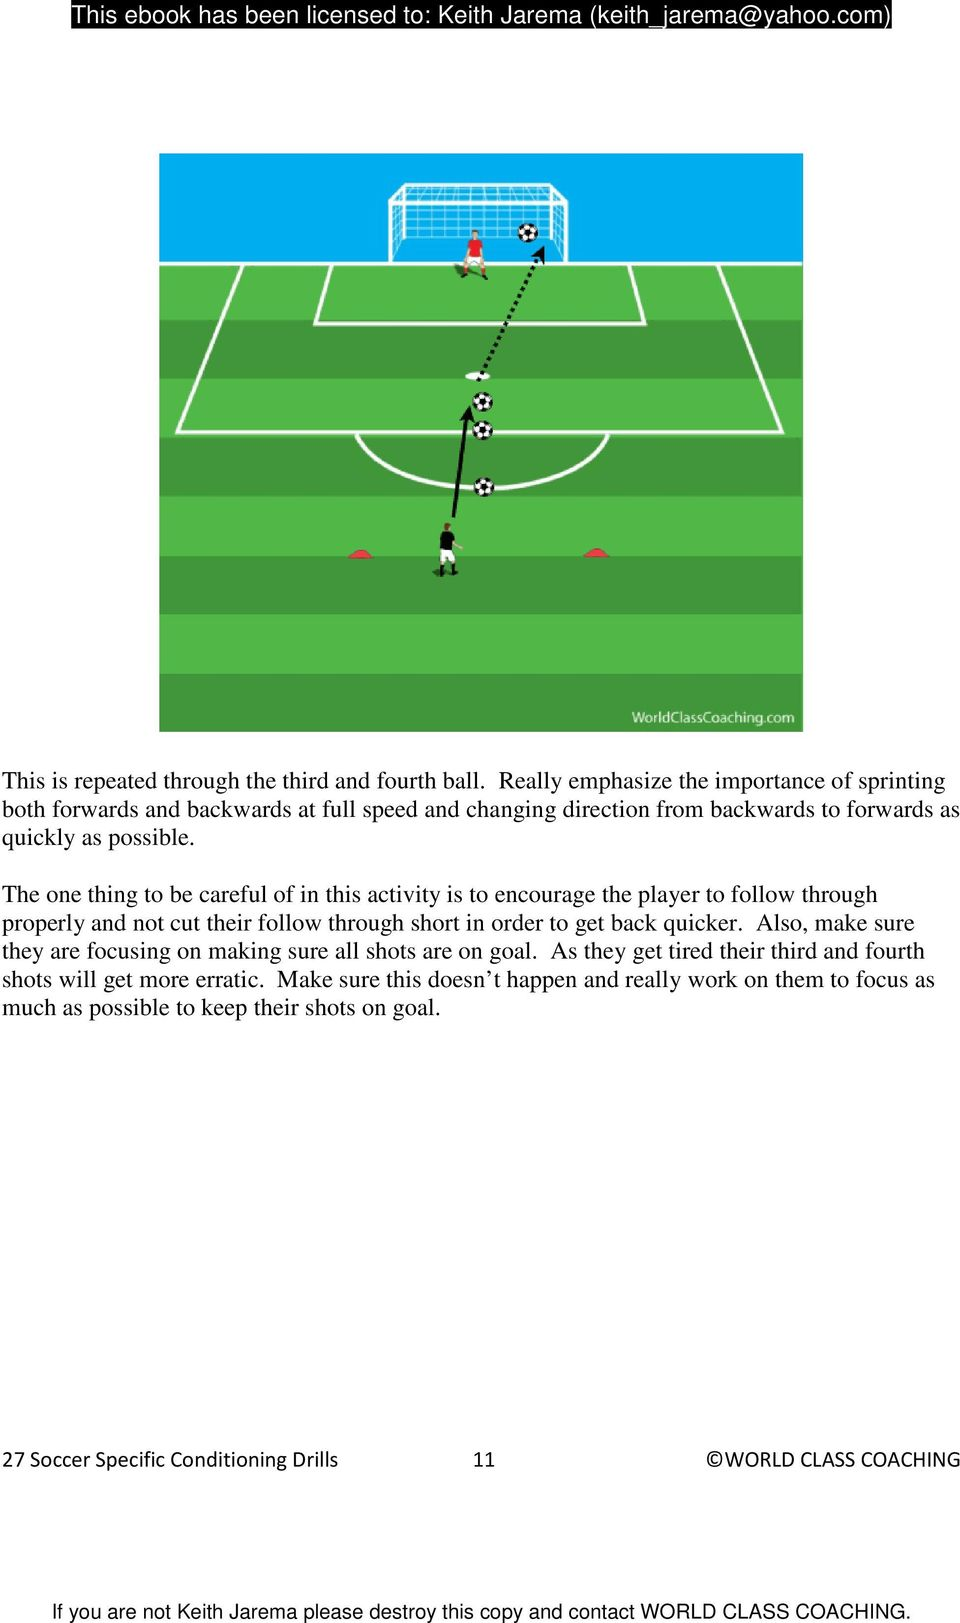 The one thing to be careful of in this activity is to encourage the player to follow through properly and not cut their follow through short in order to get back quicker.